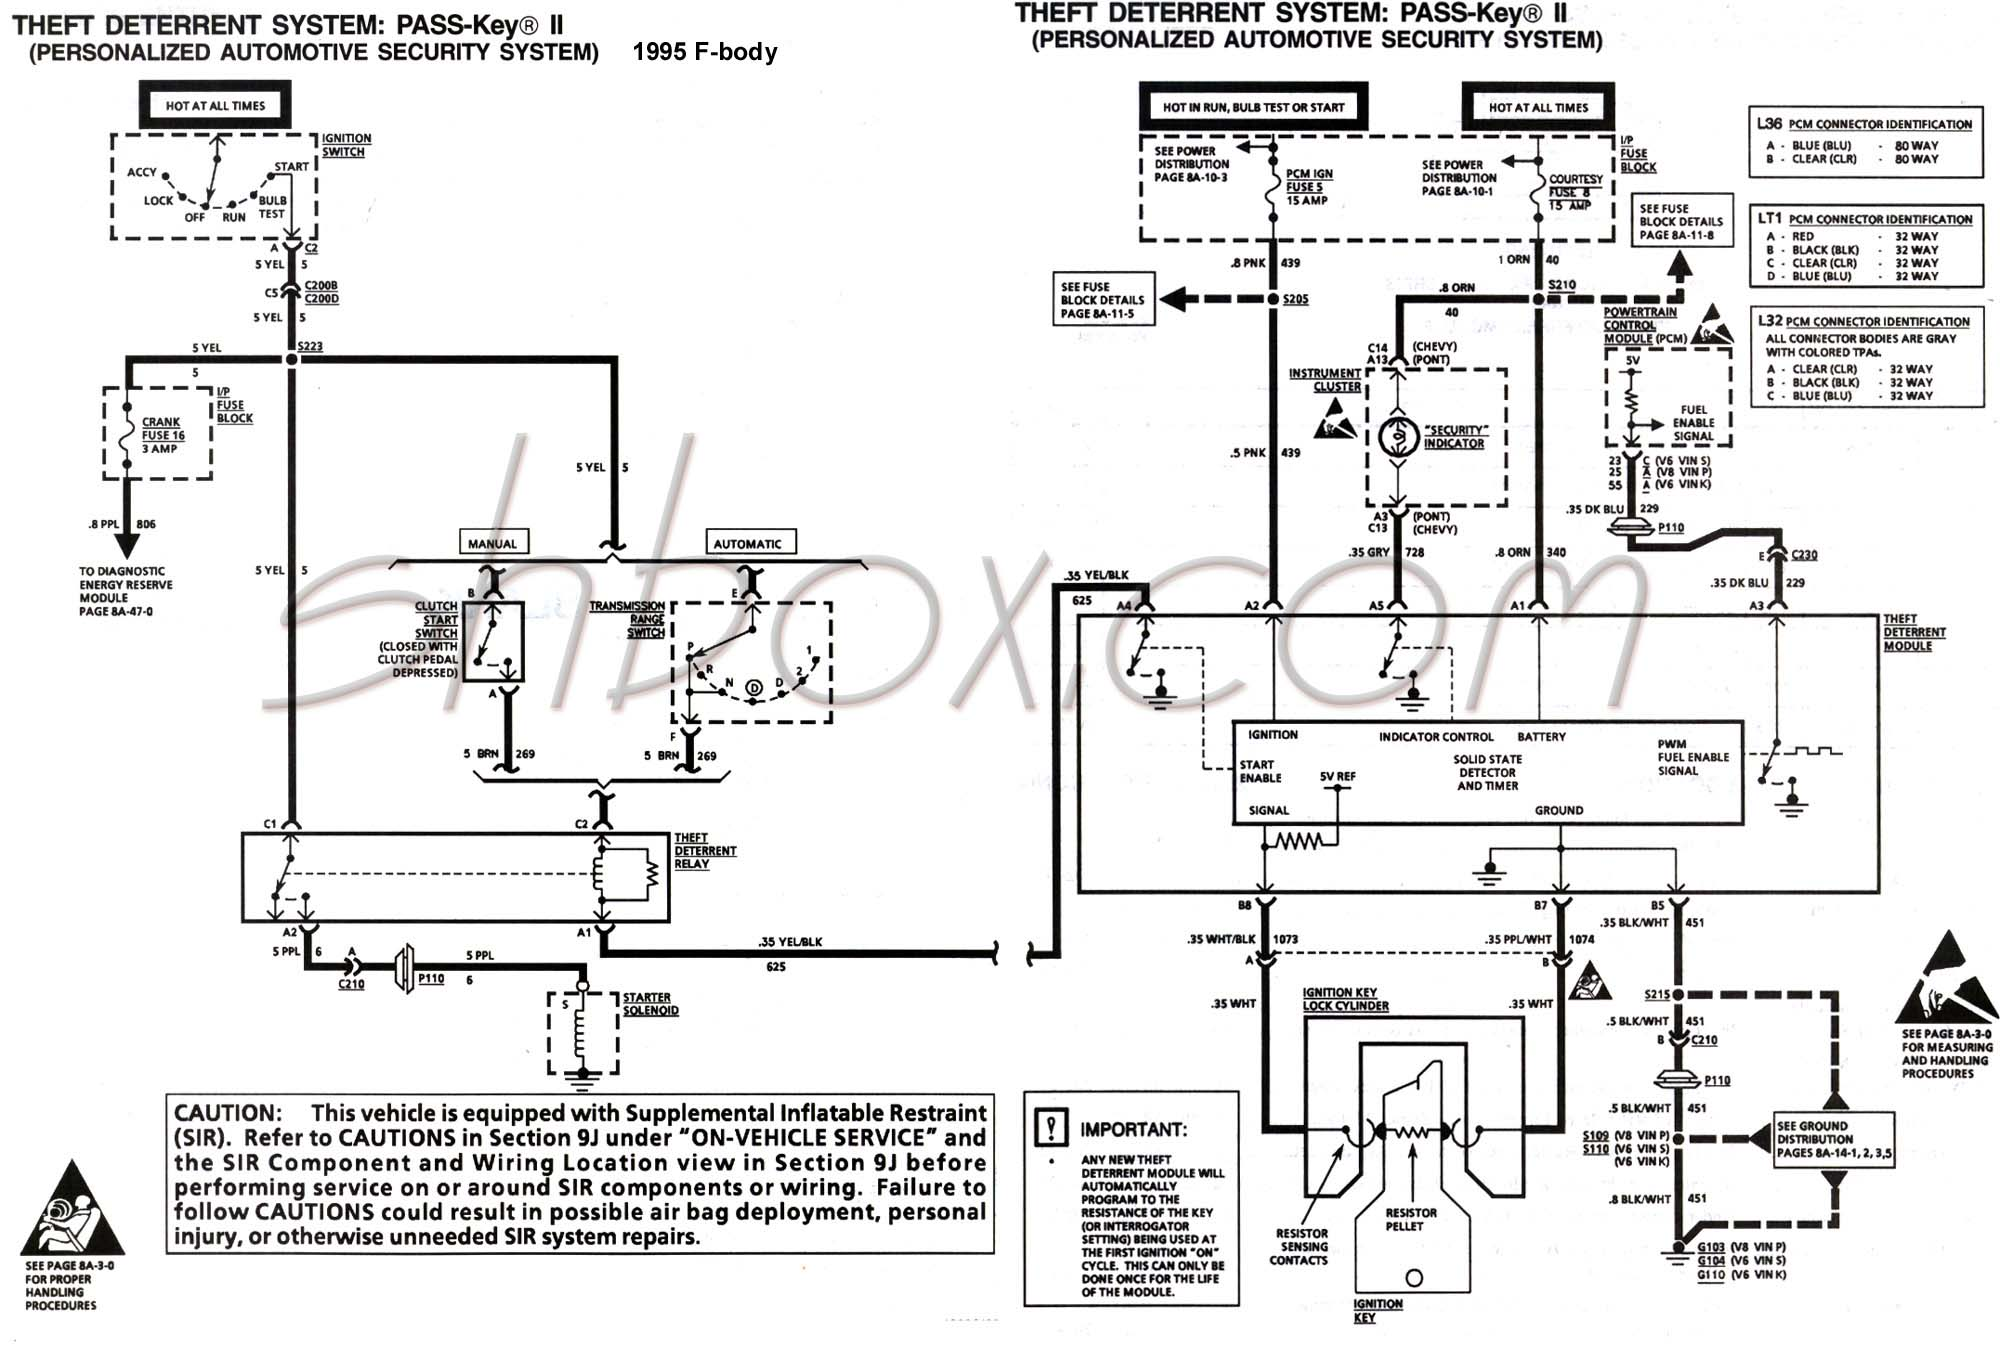 hight resolution of wrg 8765 1986 buick 3800 engine diagram wiring schematic1986 buick 3800 engine diagram wiring schematic